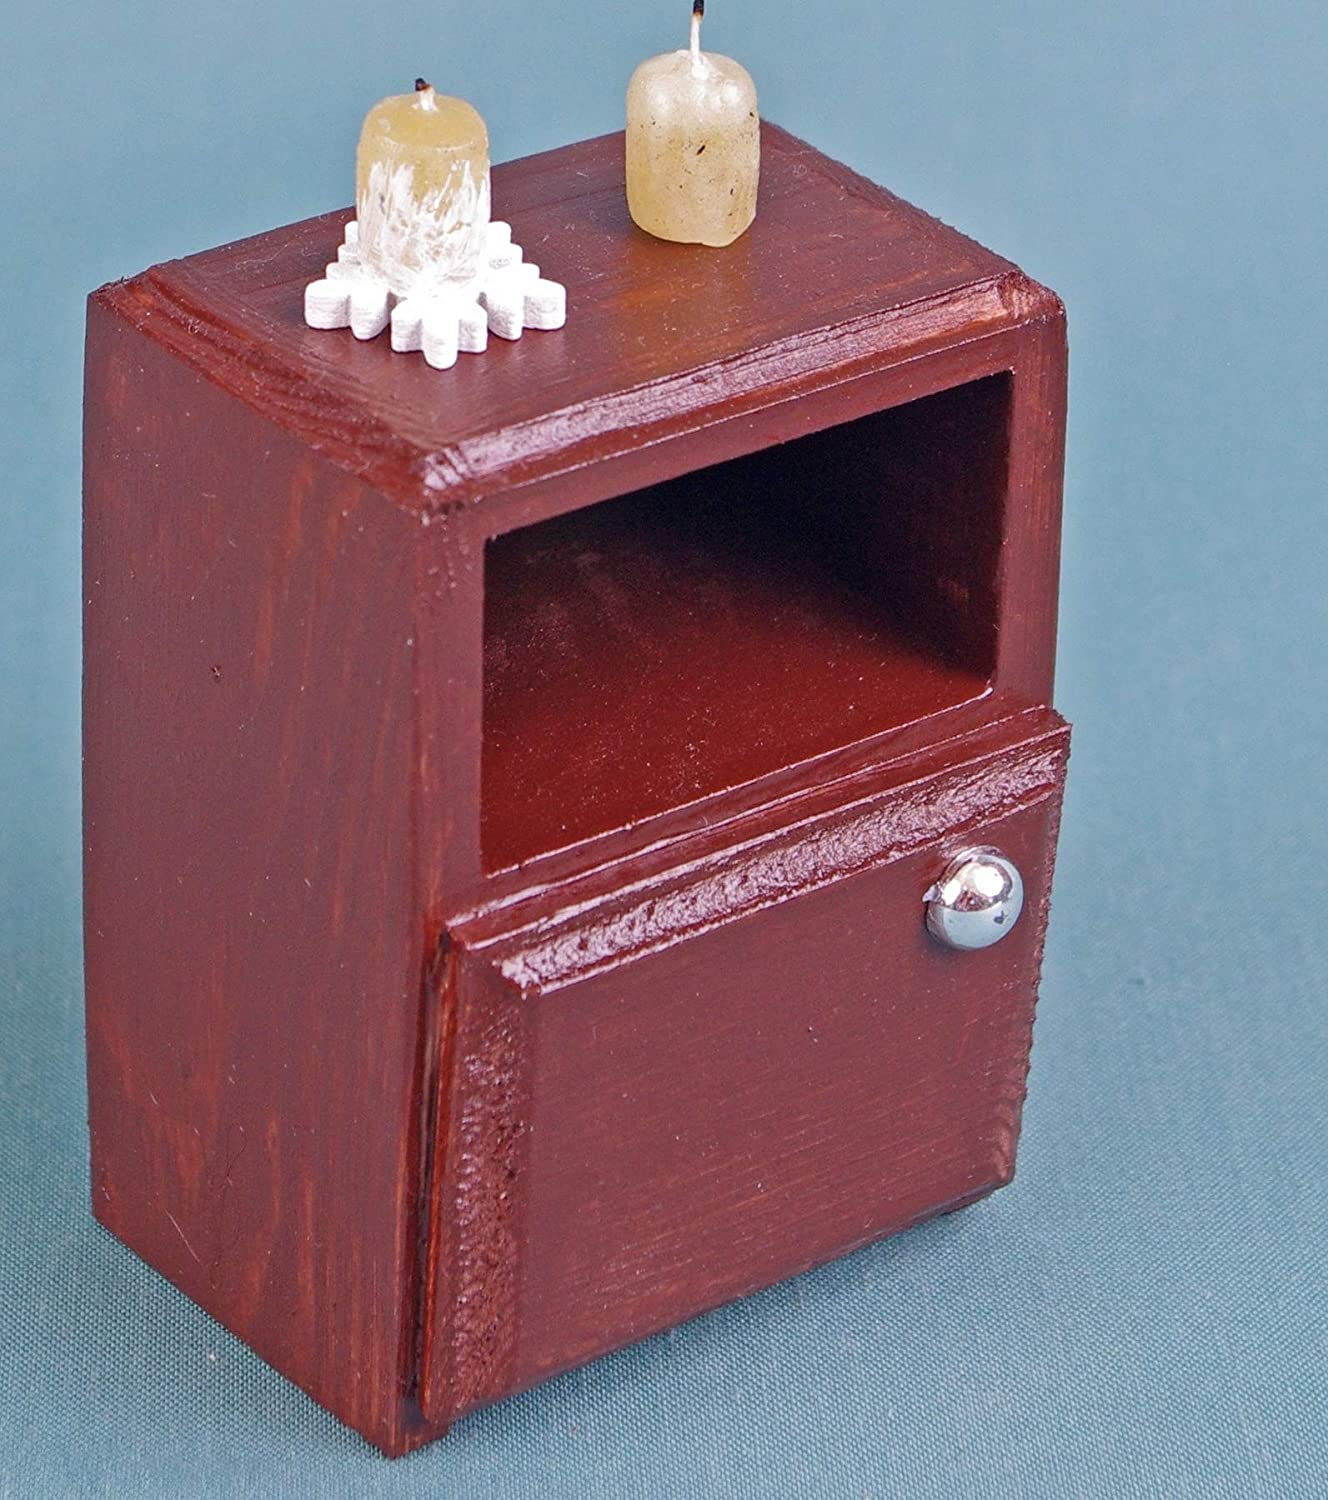 Bedside Table bedroom dollhouse 1:6 playscale wooden furniture 12 inch dolls for Barbie Blythe Monster High EAH MH role-playing games